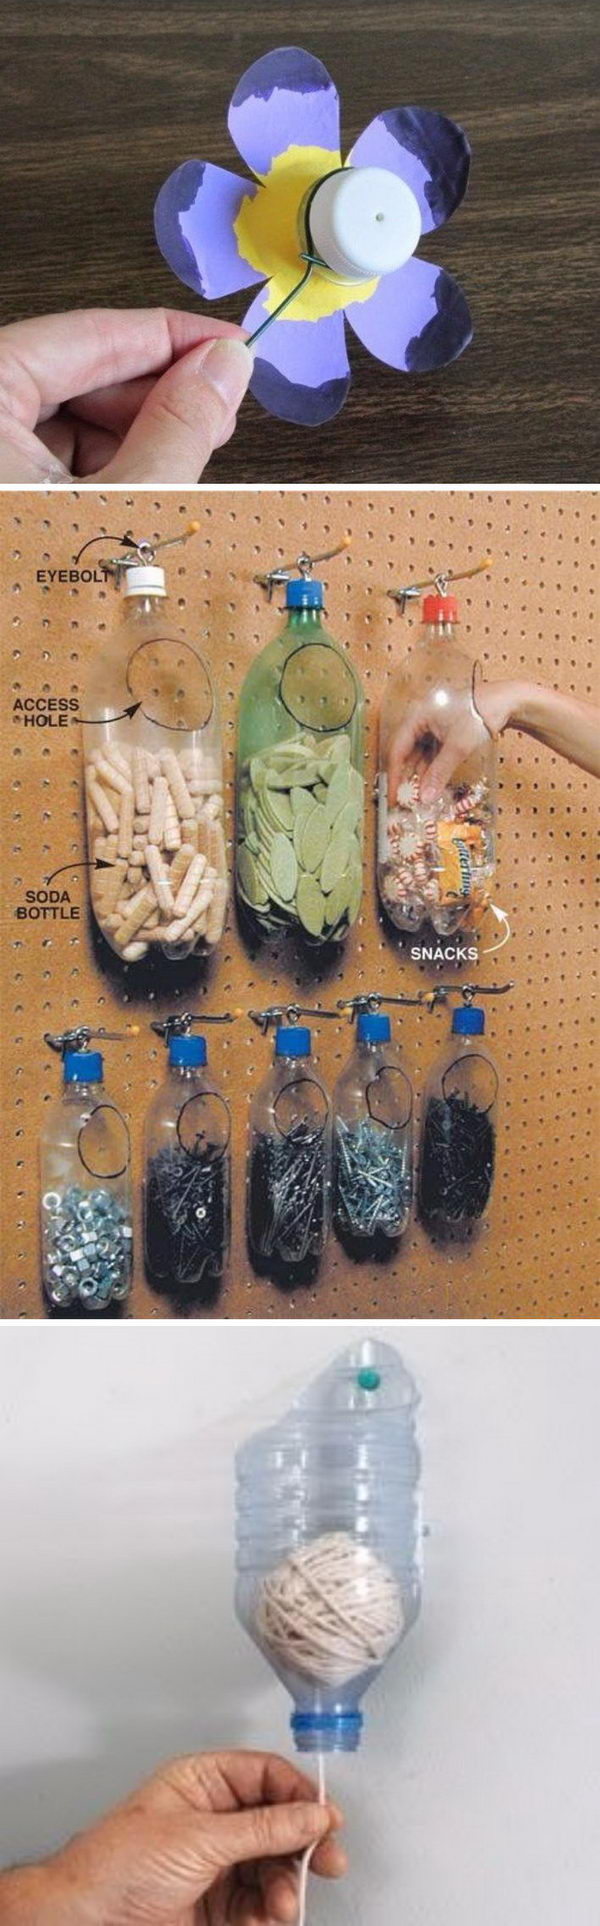 Creative Ways To Recycle Old Plastic Bottles.